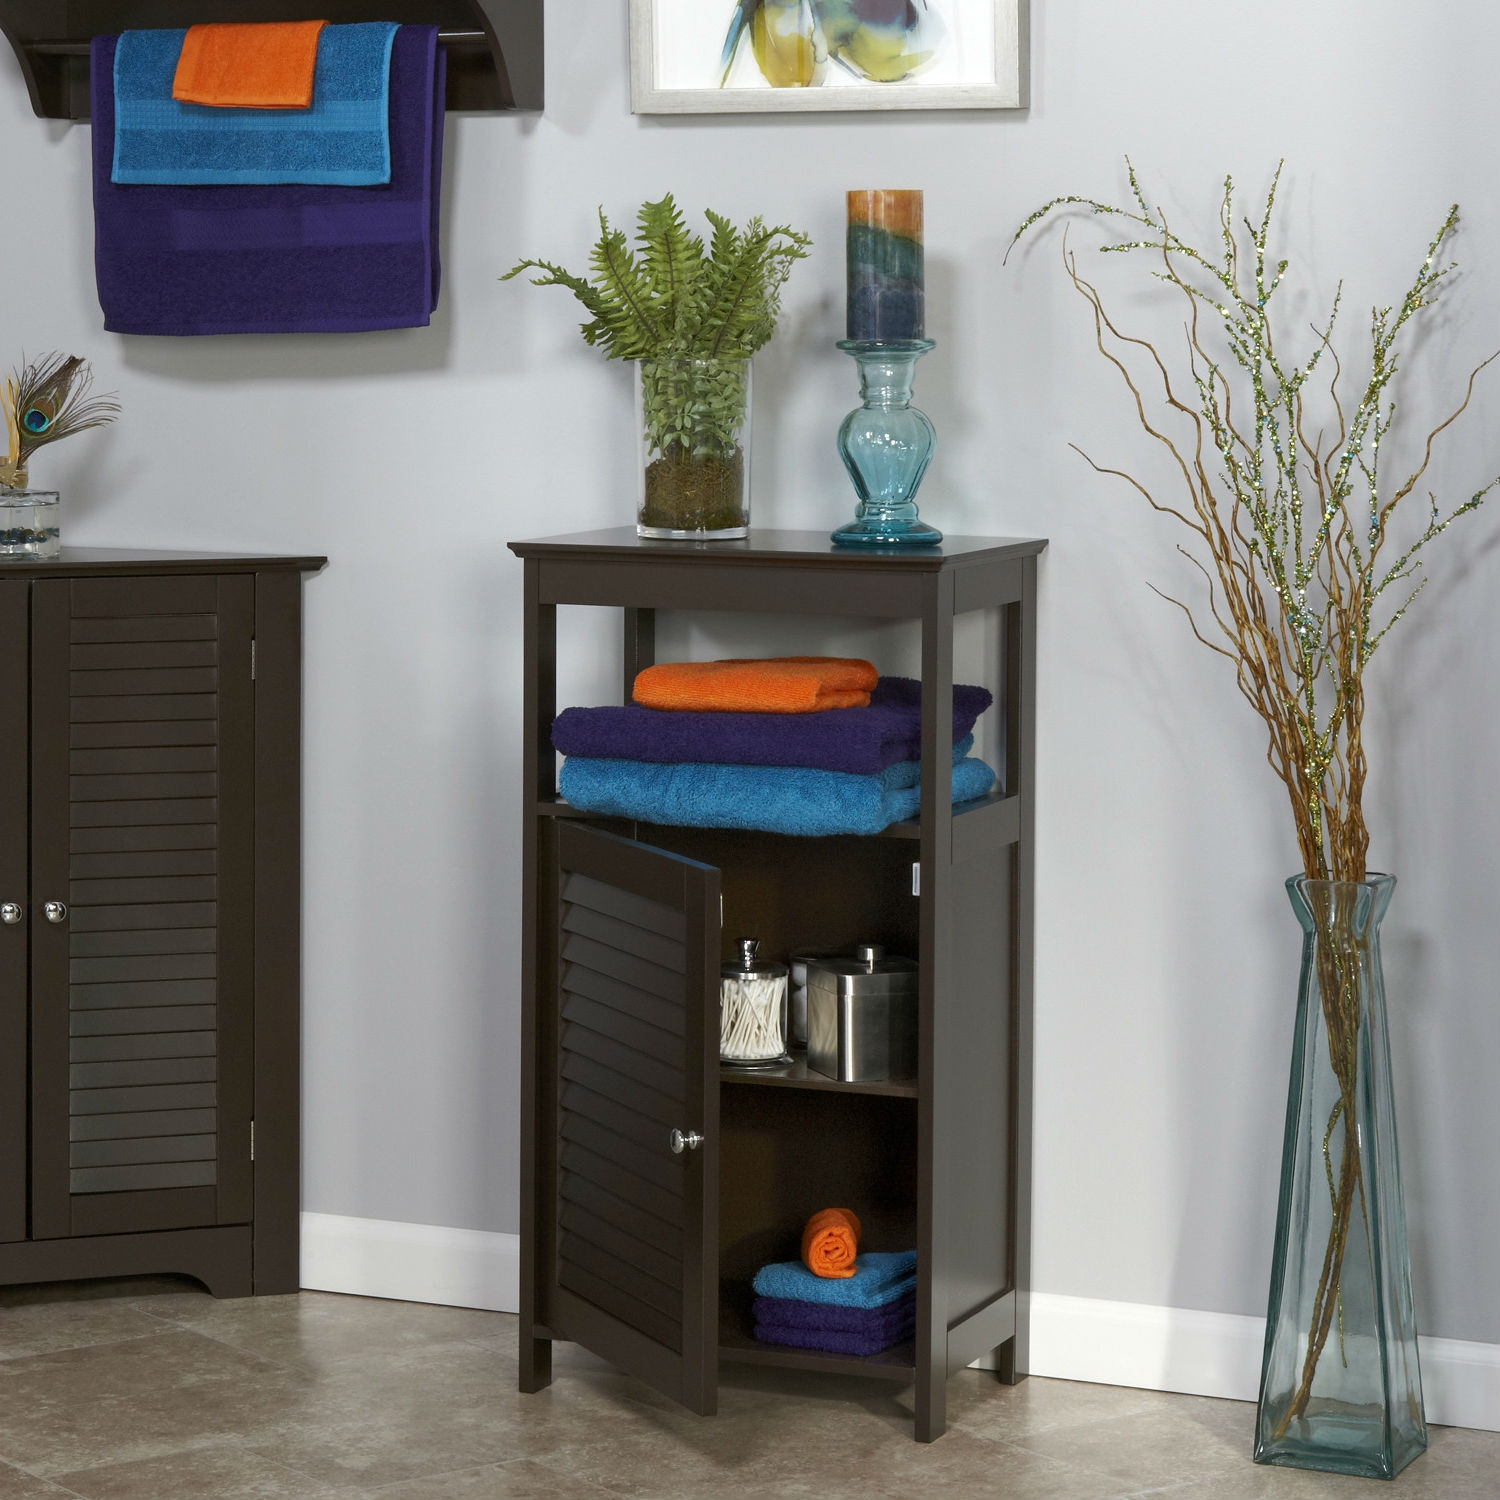 Picture of: Modern Bathroom Floor Cabinet Free Standing Storage Unit In Espresso Wood Finish Fastfurnishings Com